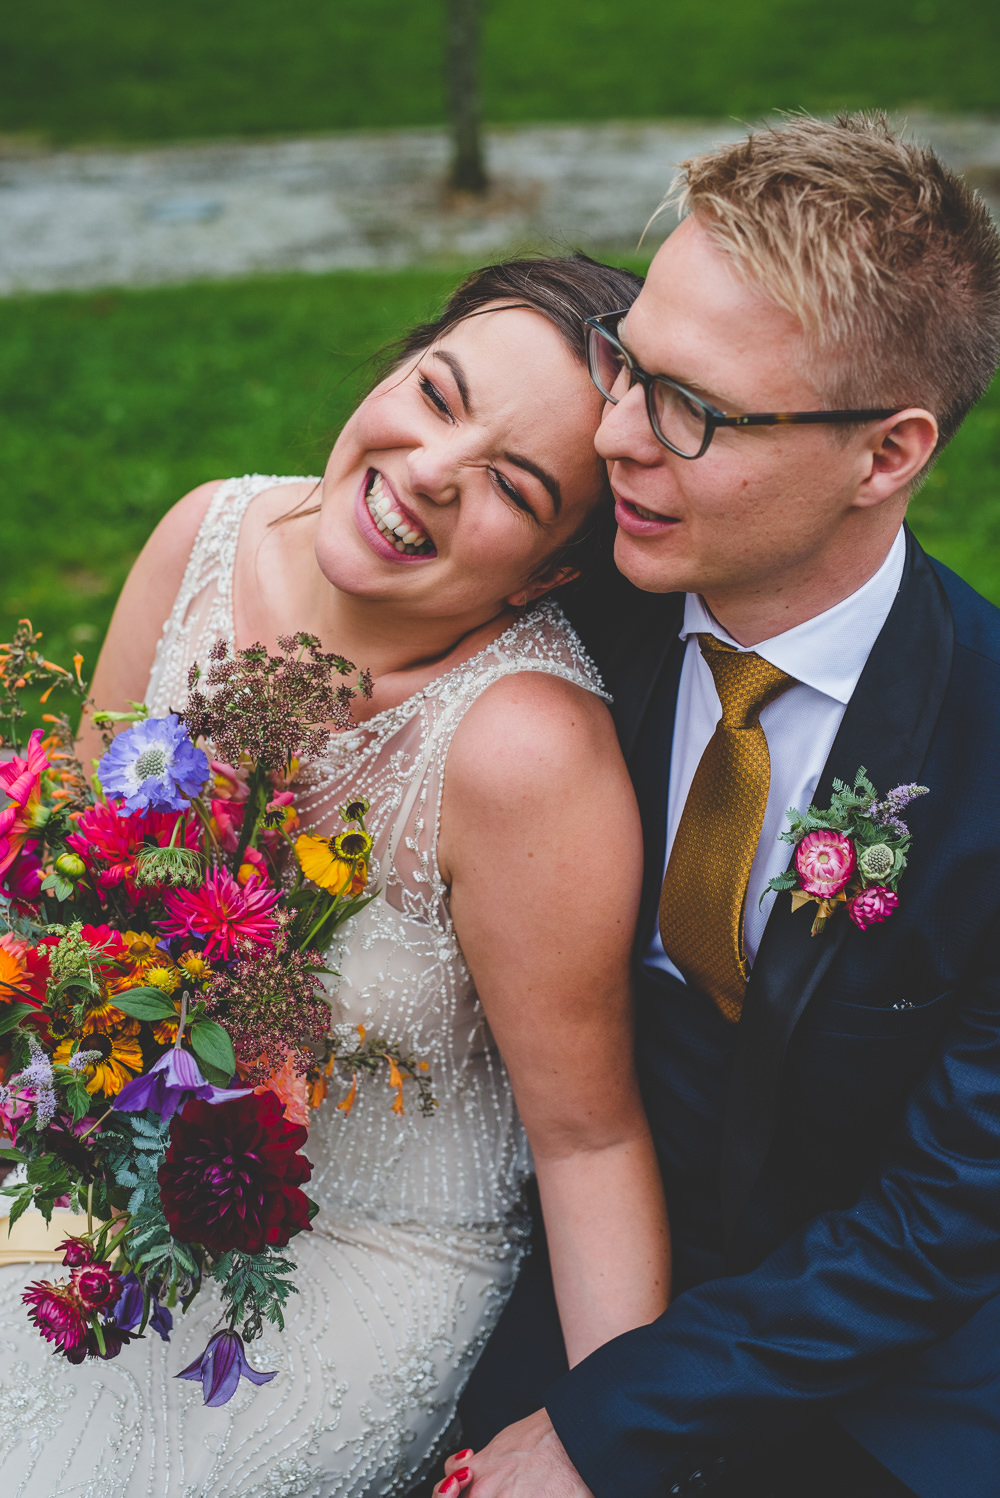 Bride Bridal Beaded Embellished Dress Navy Blue Tuxedo Mustard Tie Groom Multicoloured Bouquet Victoria Gallery Museum Wedding Emma Hillier Photography